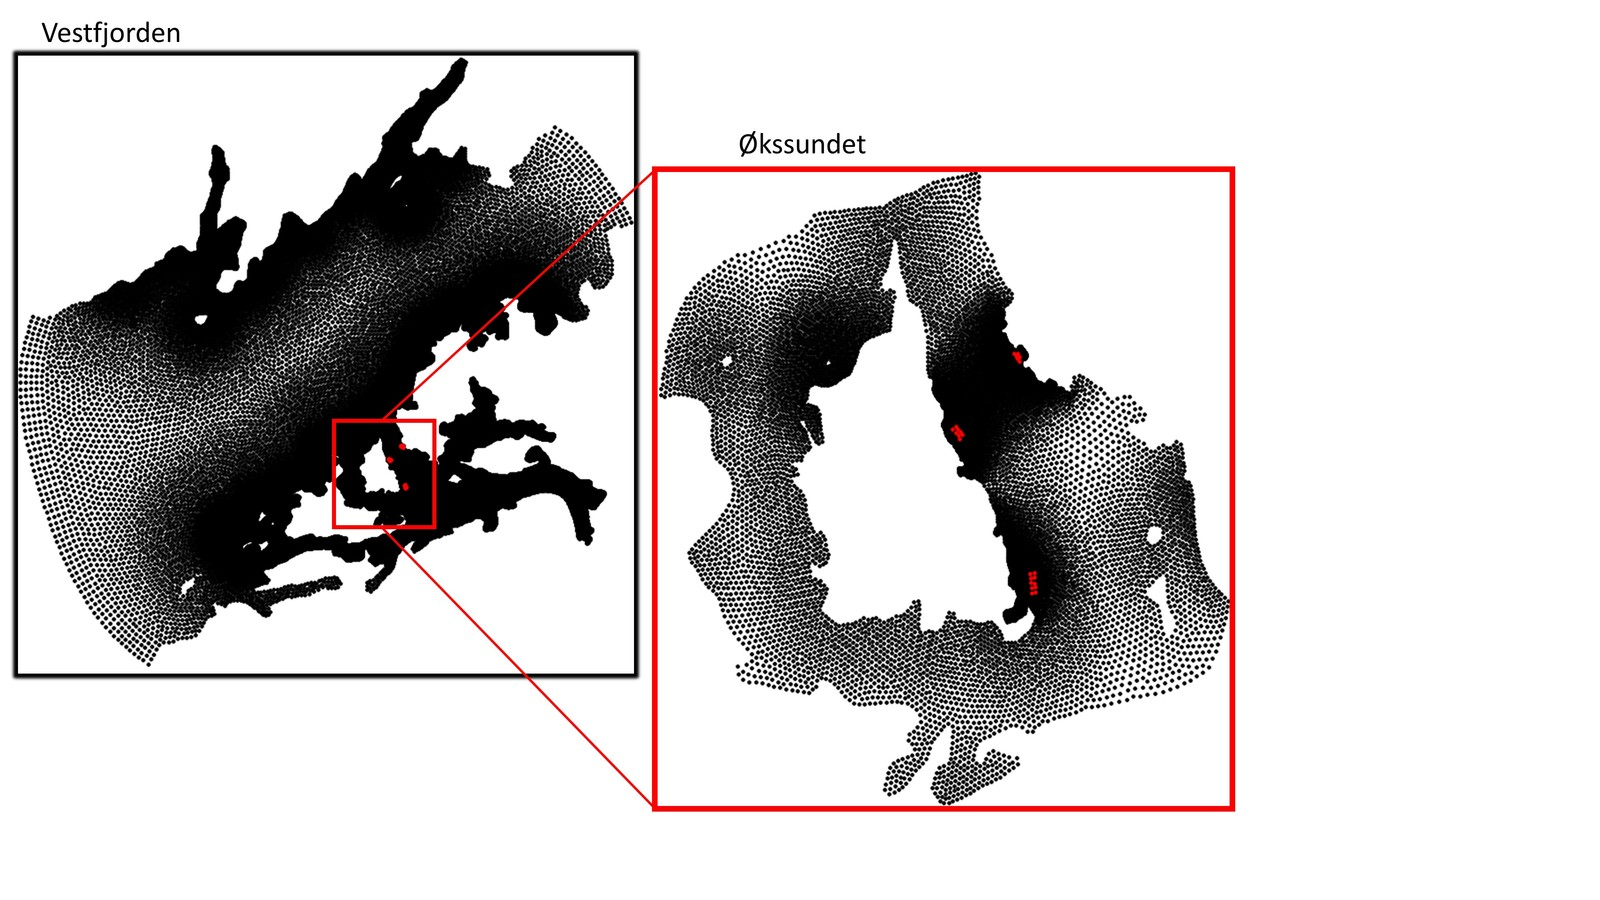 Figure 1: Model domains for Sagfjorden. The Large domain (left) covers most of Vestfjorden and Sagfjorden, while the small domain (right) is nested into the larger and covers the area around the three fish farms used in this study. The large domain was run to assure a realistic circulation and has a resolution of about 800 m at the outer boundary down to approximately 70 m in the narrow parts of Sagfjorden. The small domain has higher resolution, down to about 10m around the fish farms in order to get a realistic spreading and deposition close to the fish cages.